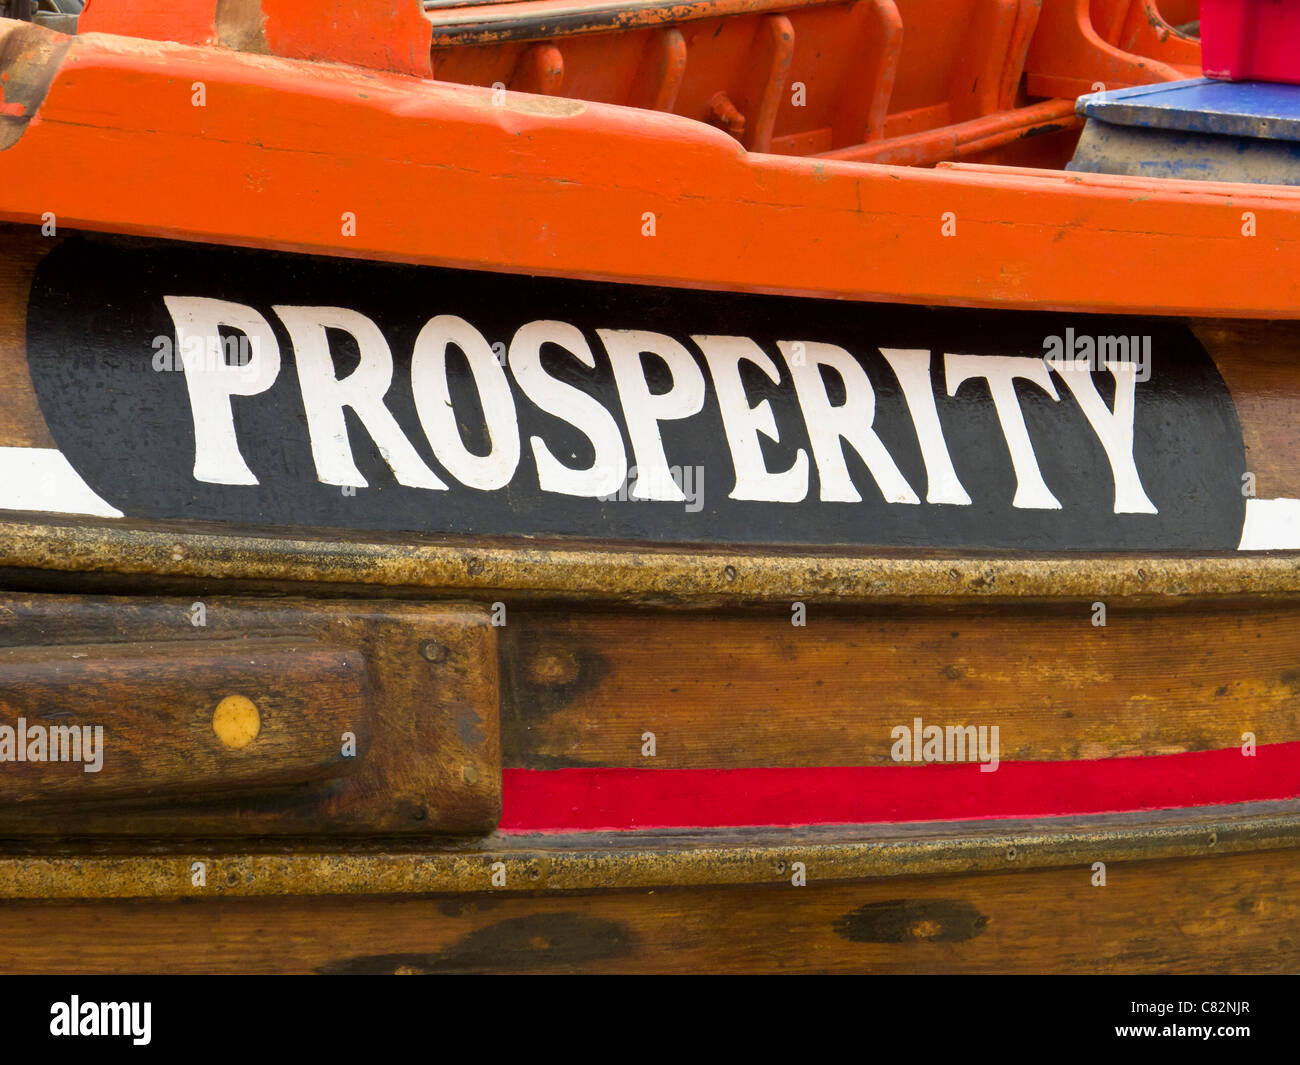 Prosperity, the name of a fishing boat, Flamborough, North Yorkshire - Stock Image